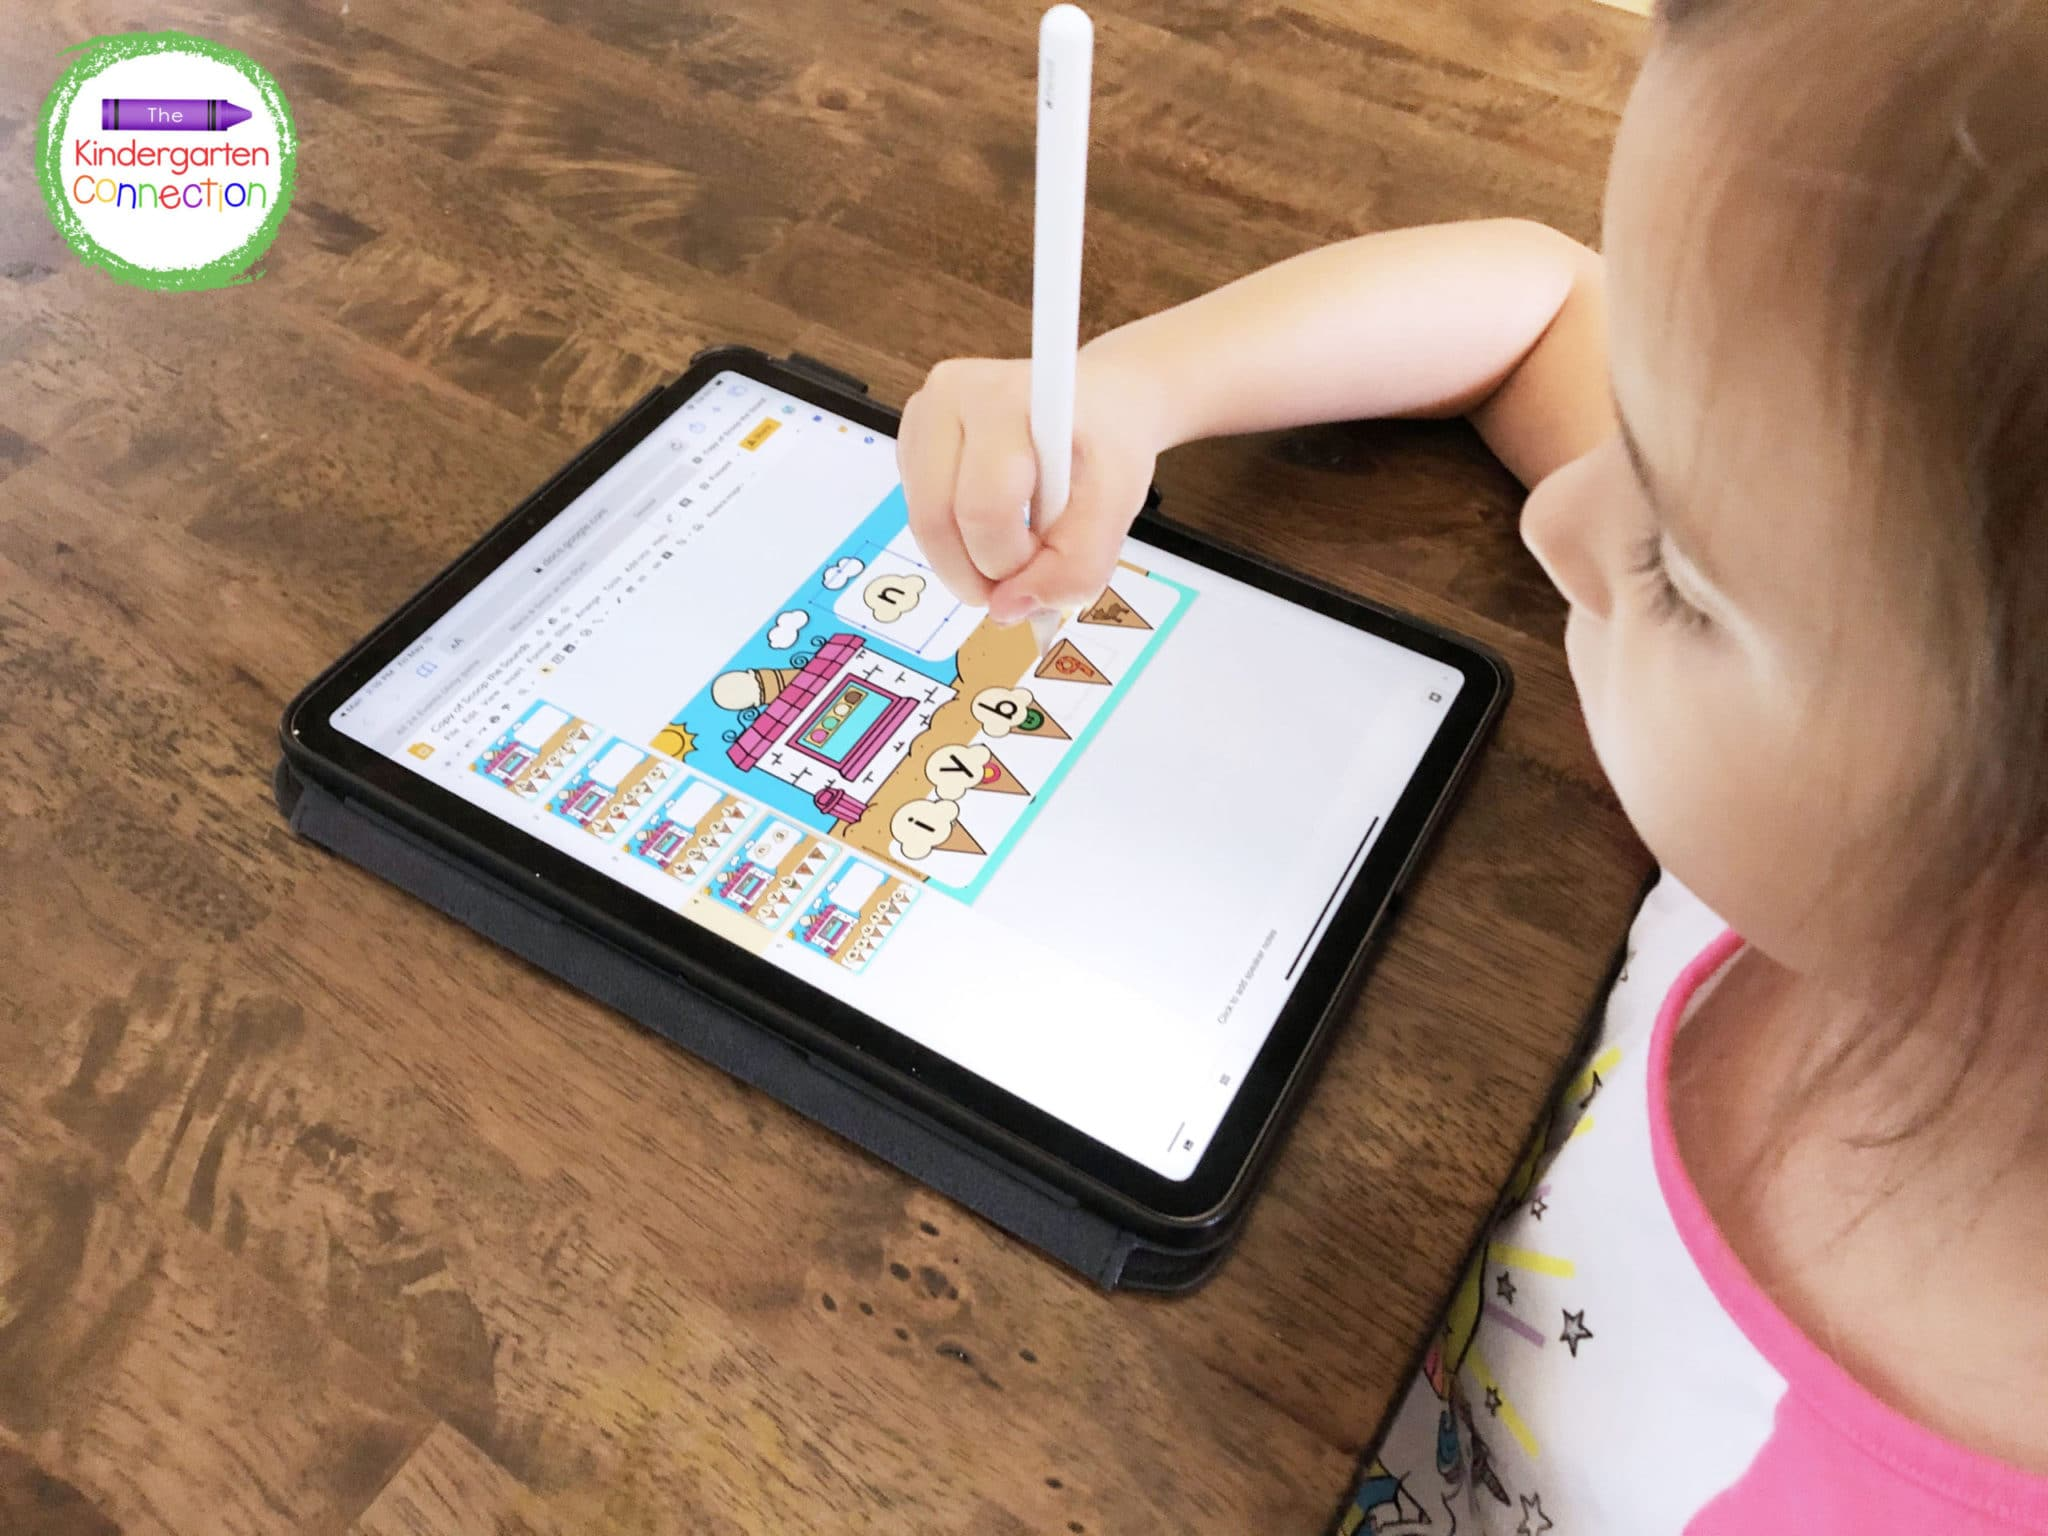 Your students can use a tablet independently to practice important skills in a way they will truly enjoy.